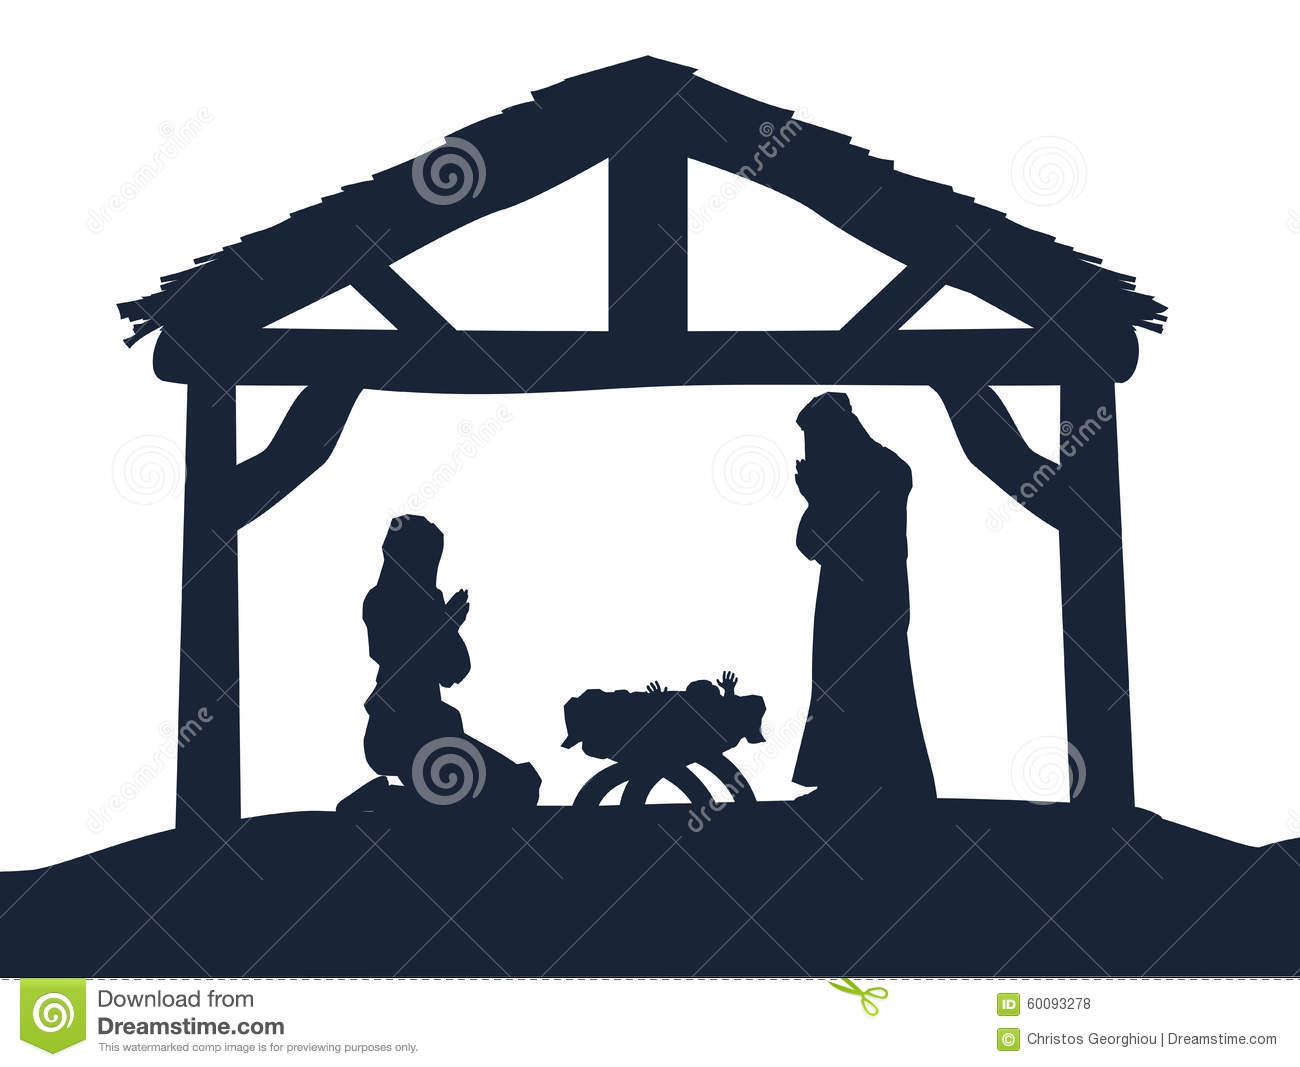 ... Scene of baby Jesus in the manger with Mary and Joseph in silhouette